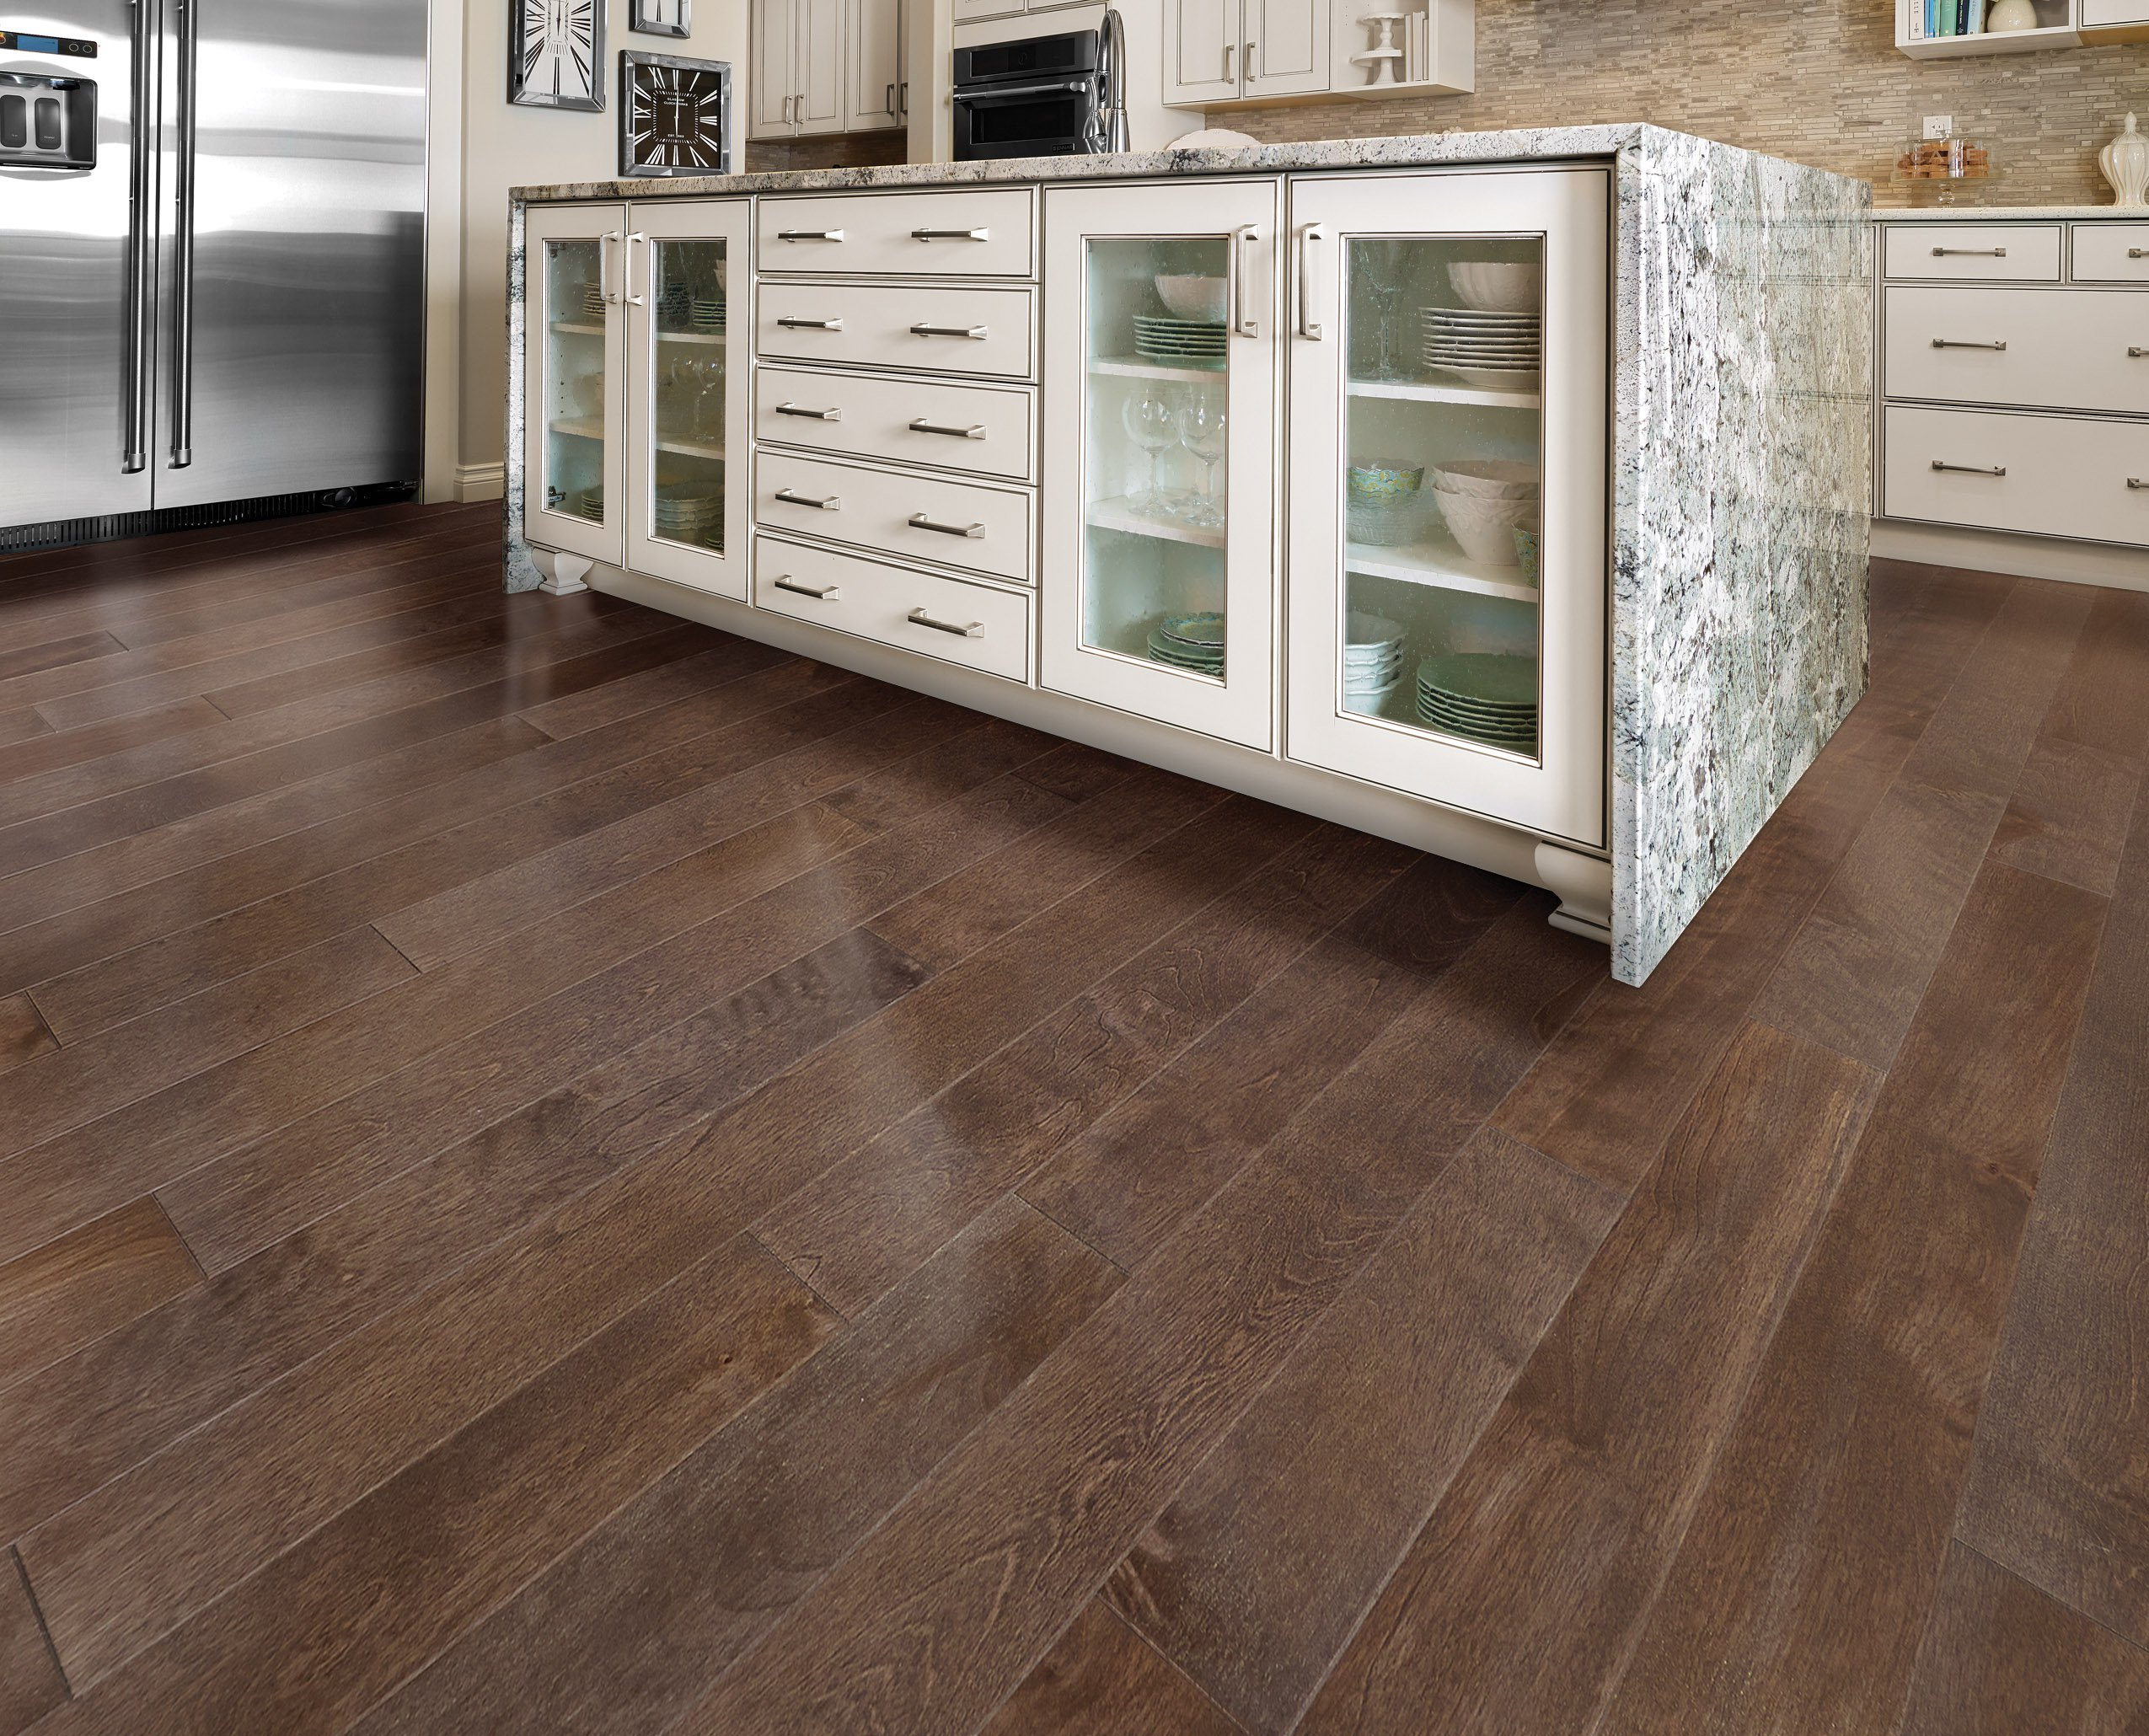 Admiration yellow birch bolton mirage hardwood floors